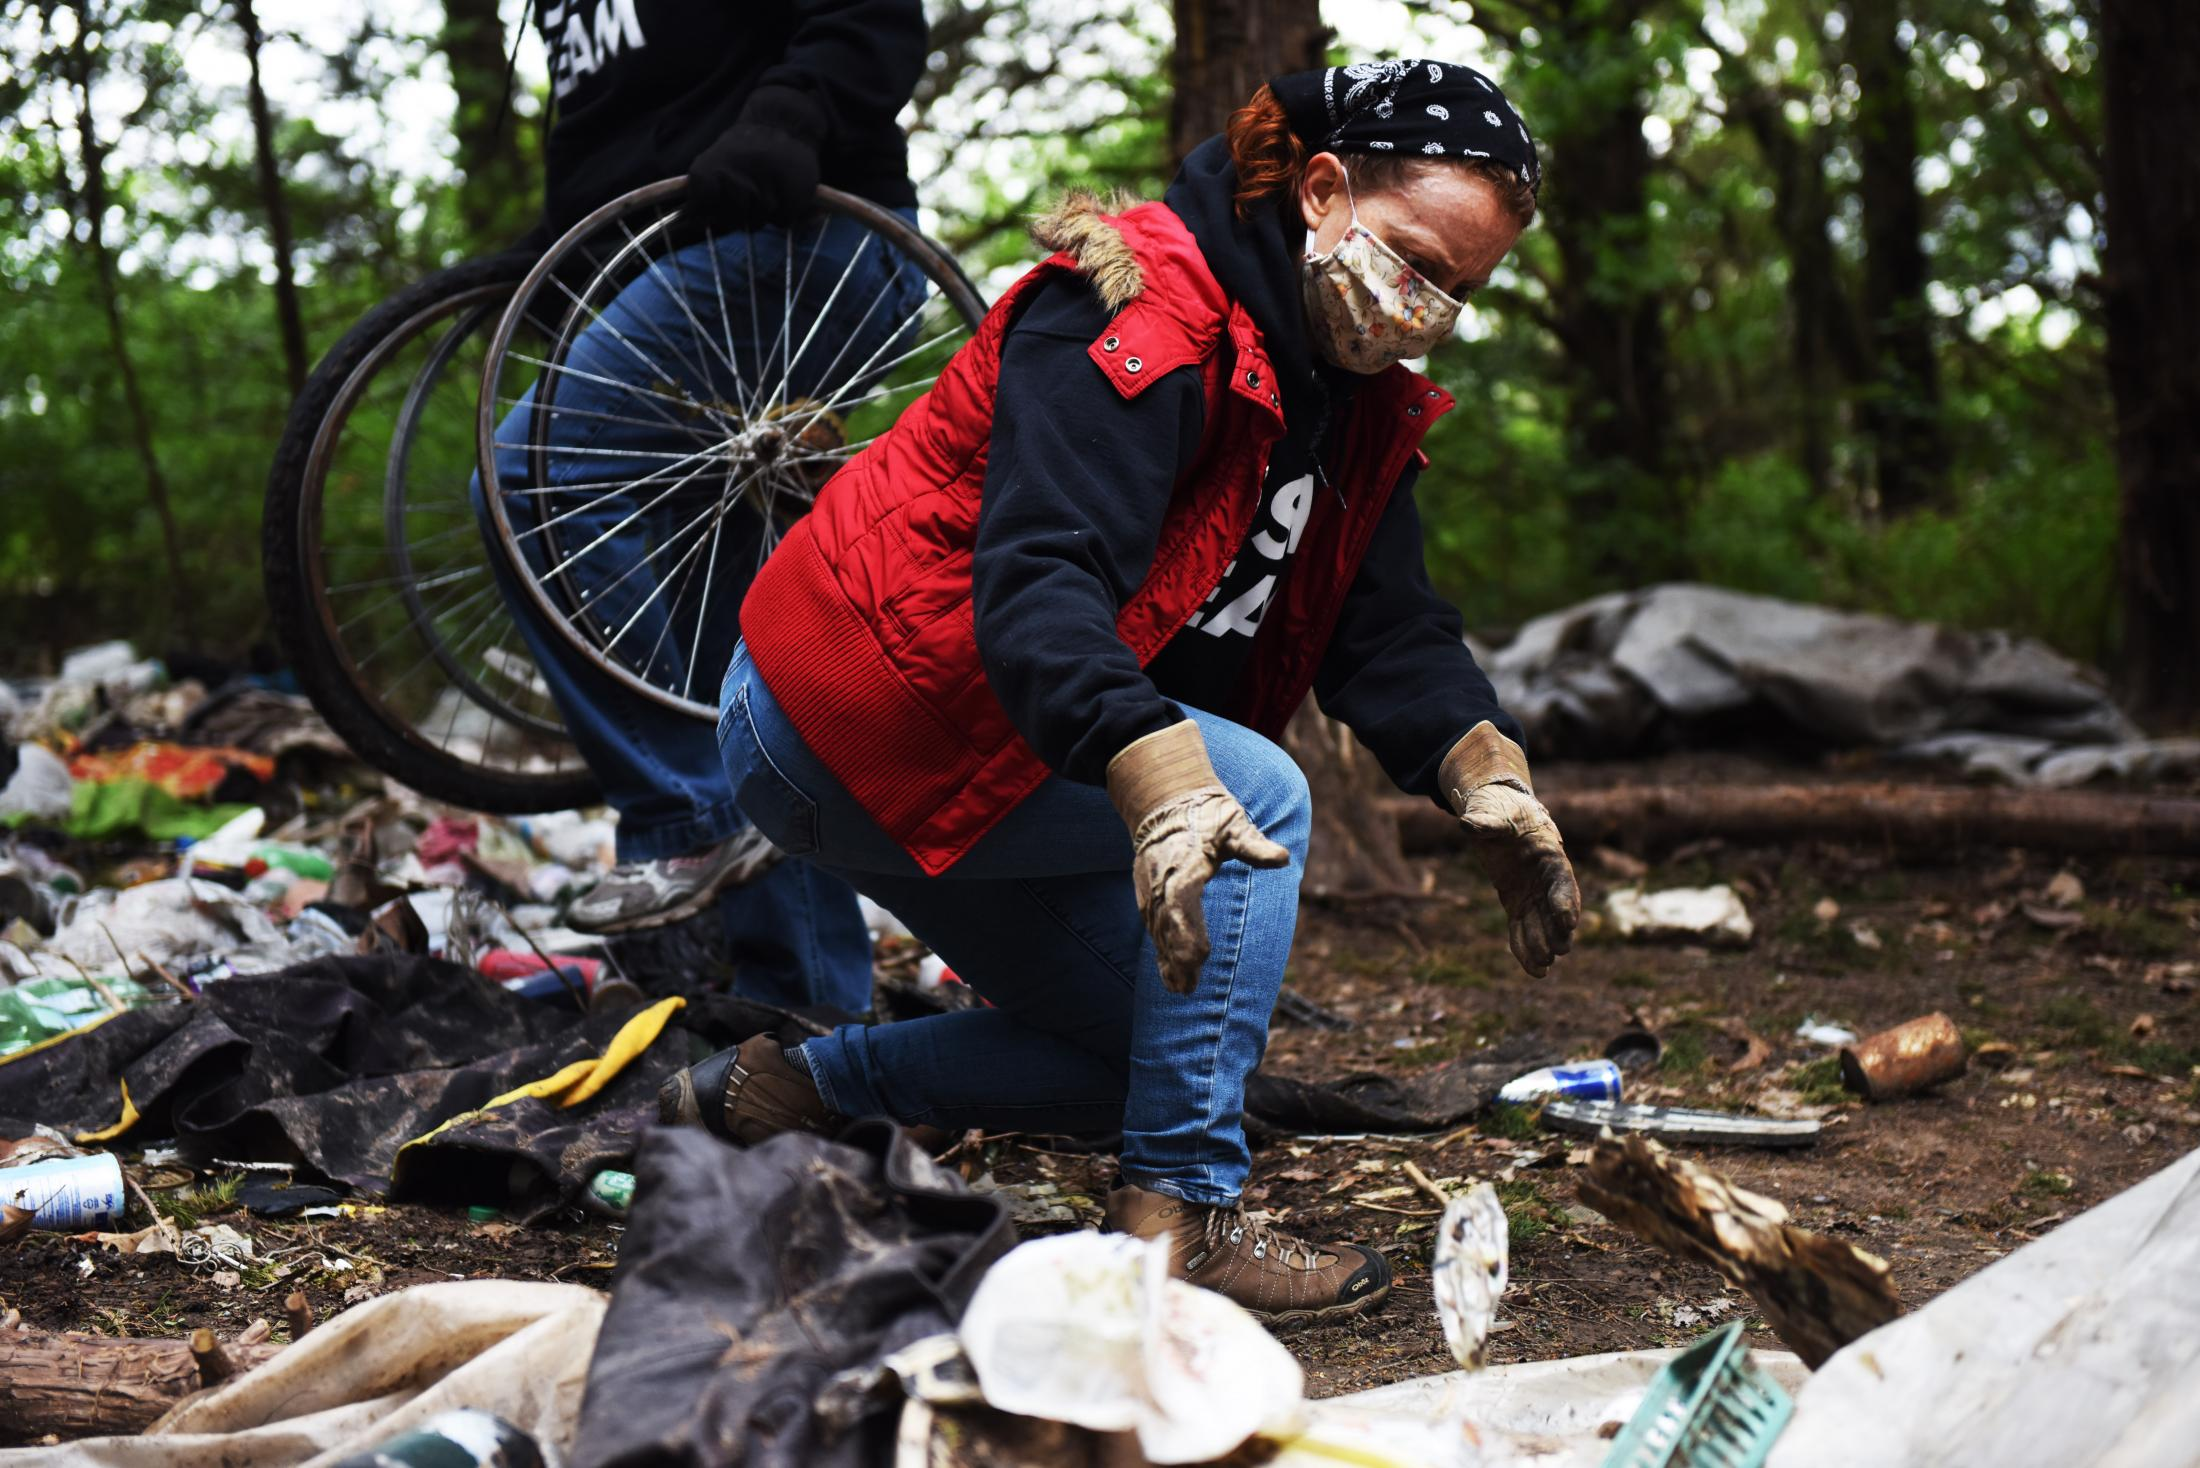 """Volunteer Renee Maxwell picks up trash April 11 in an abandoned campsite in Columbia. Maxwell regularly volunteers with Operation Safe Winter. """"We just want to help in whatever way we can,"""" she said."""